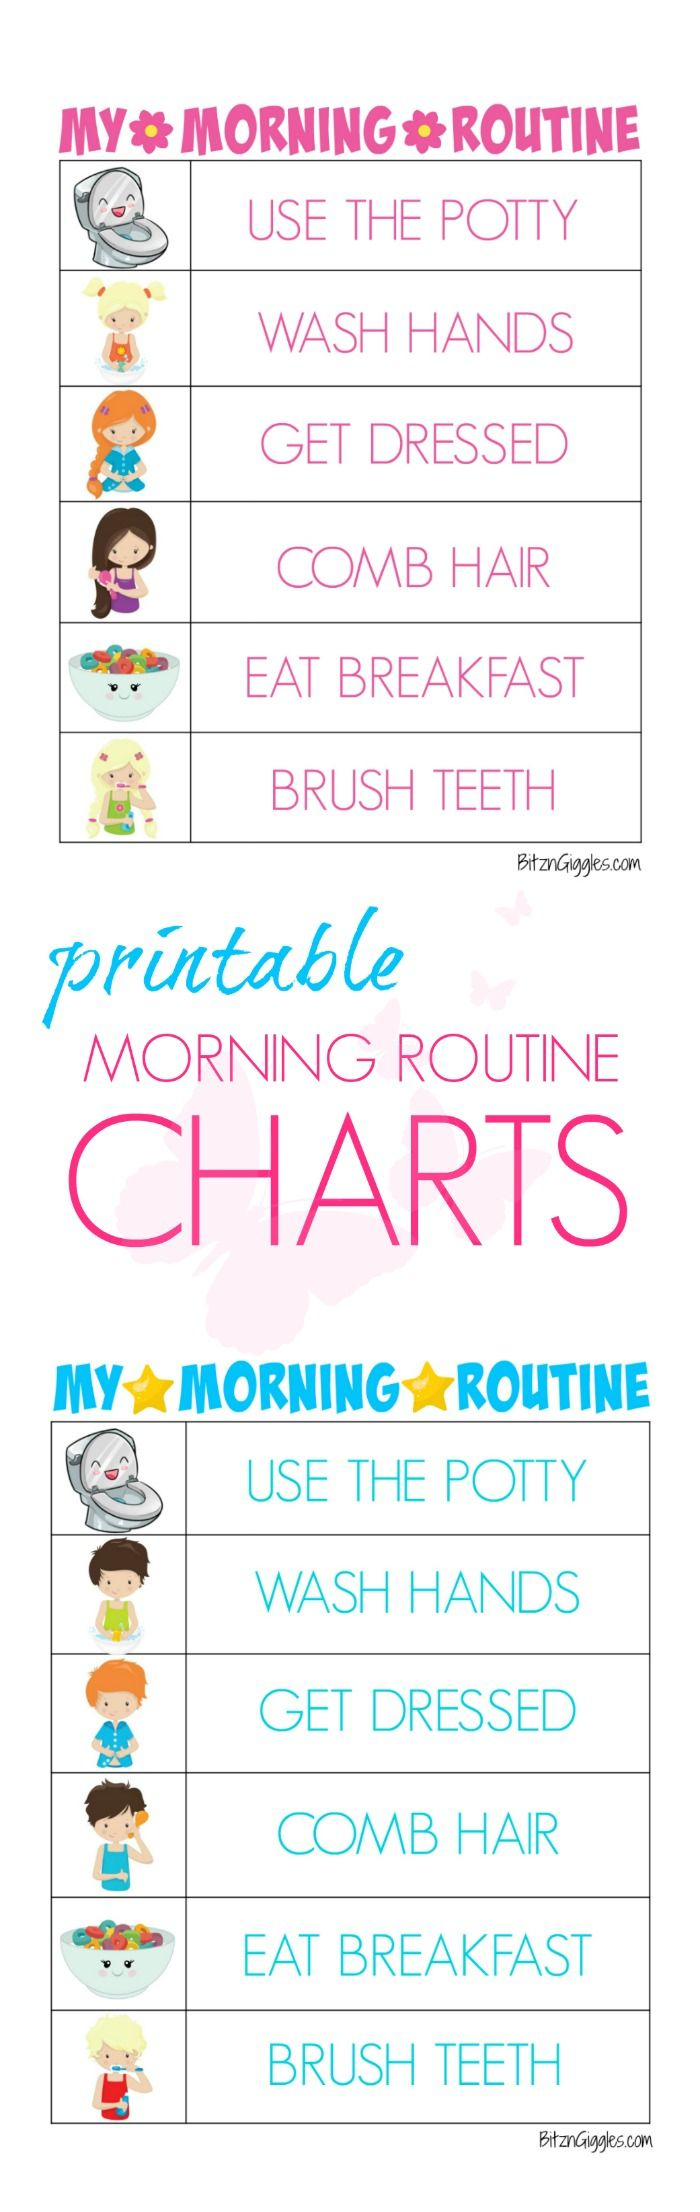 Printable Morning Routine Charts | Montessori - Free Printable Morning Routine Chart